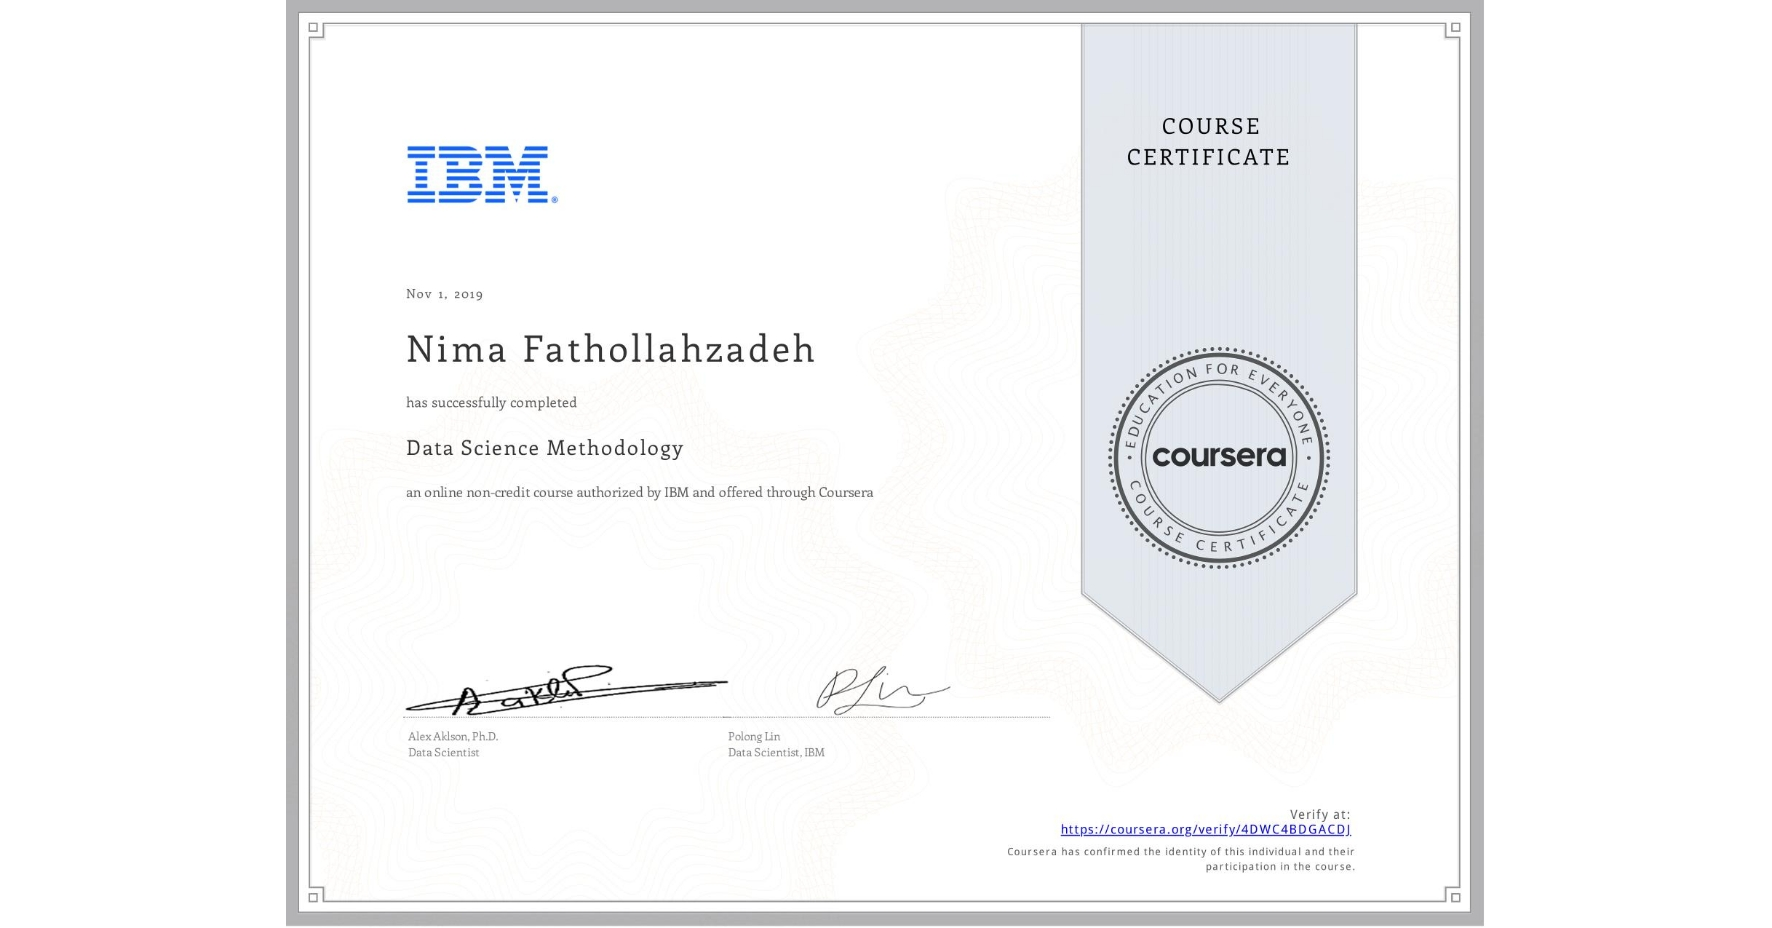 View certificate for Nima Fathollahzadeh, Data Science Methodology, an online non-credit course authorized by IBM and offered through Coursera